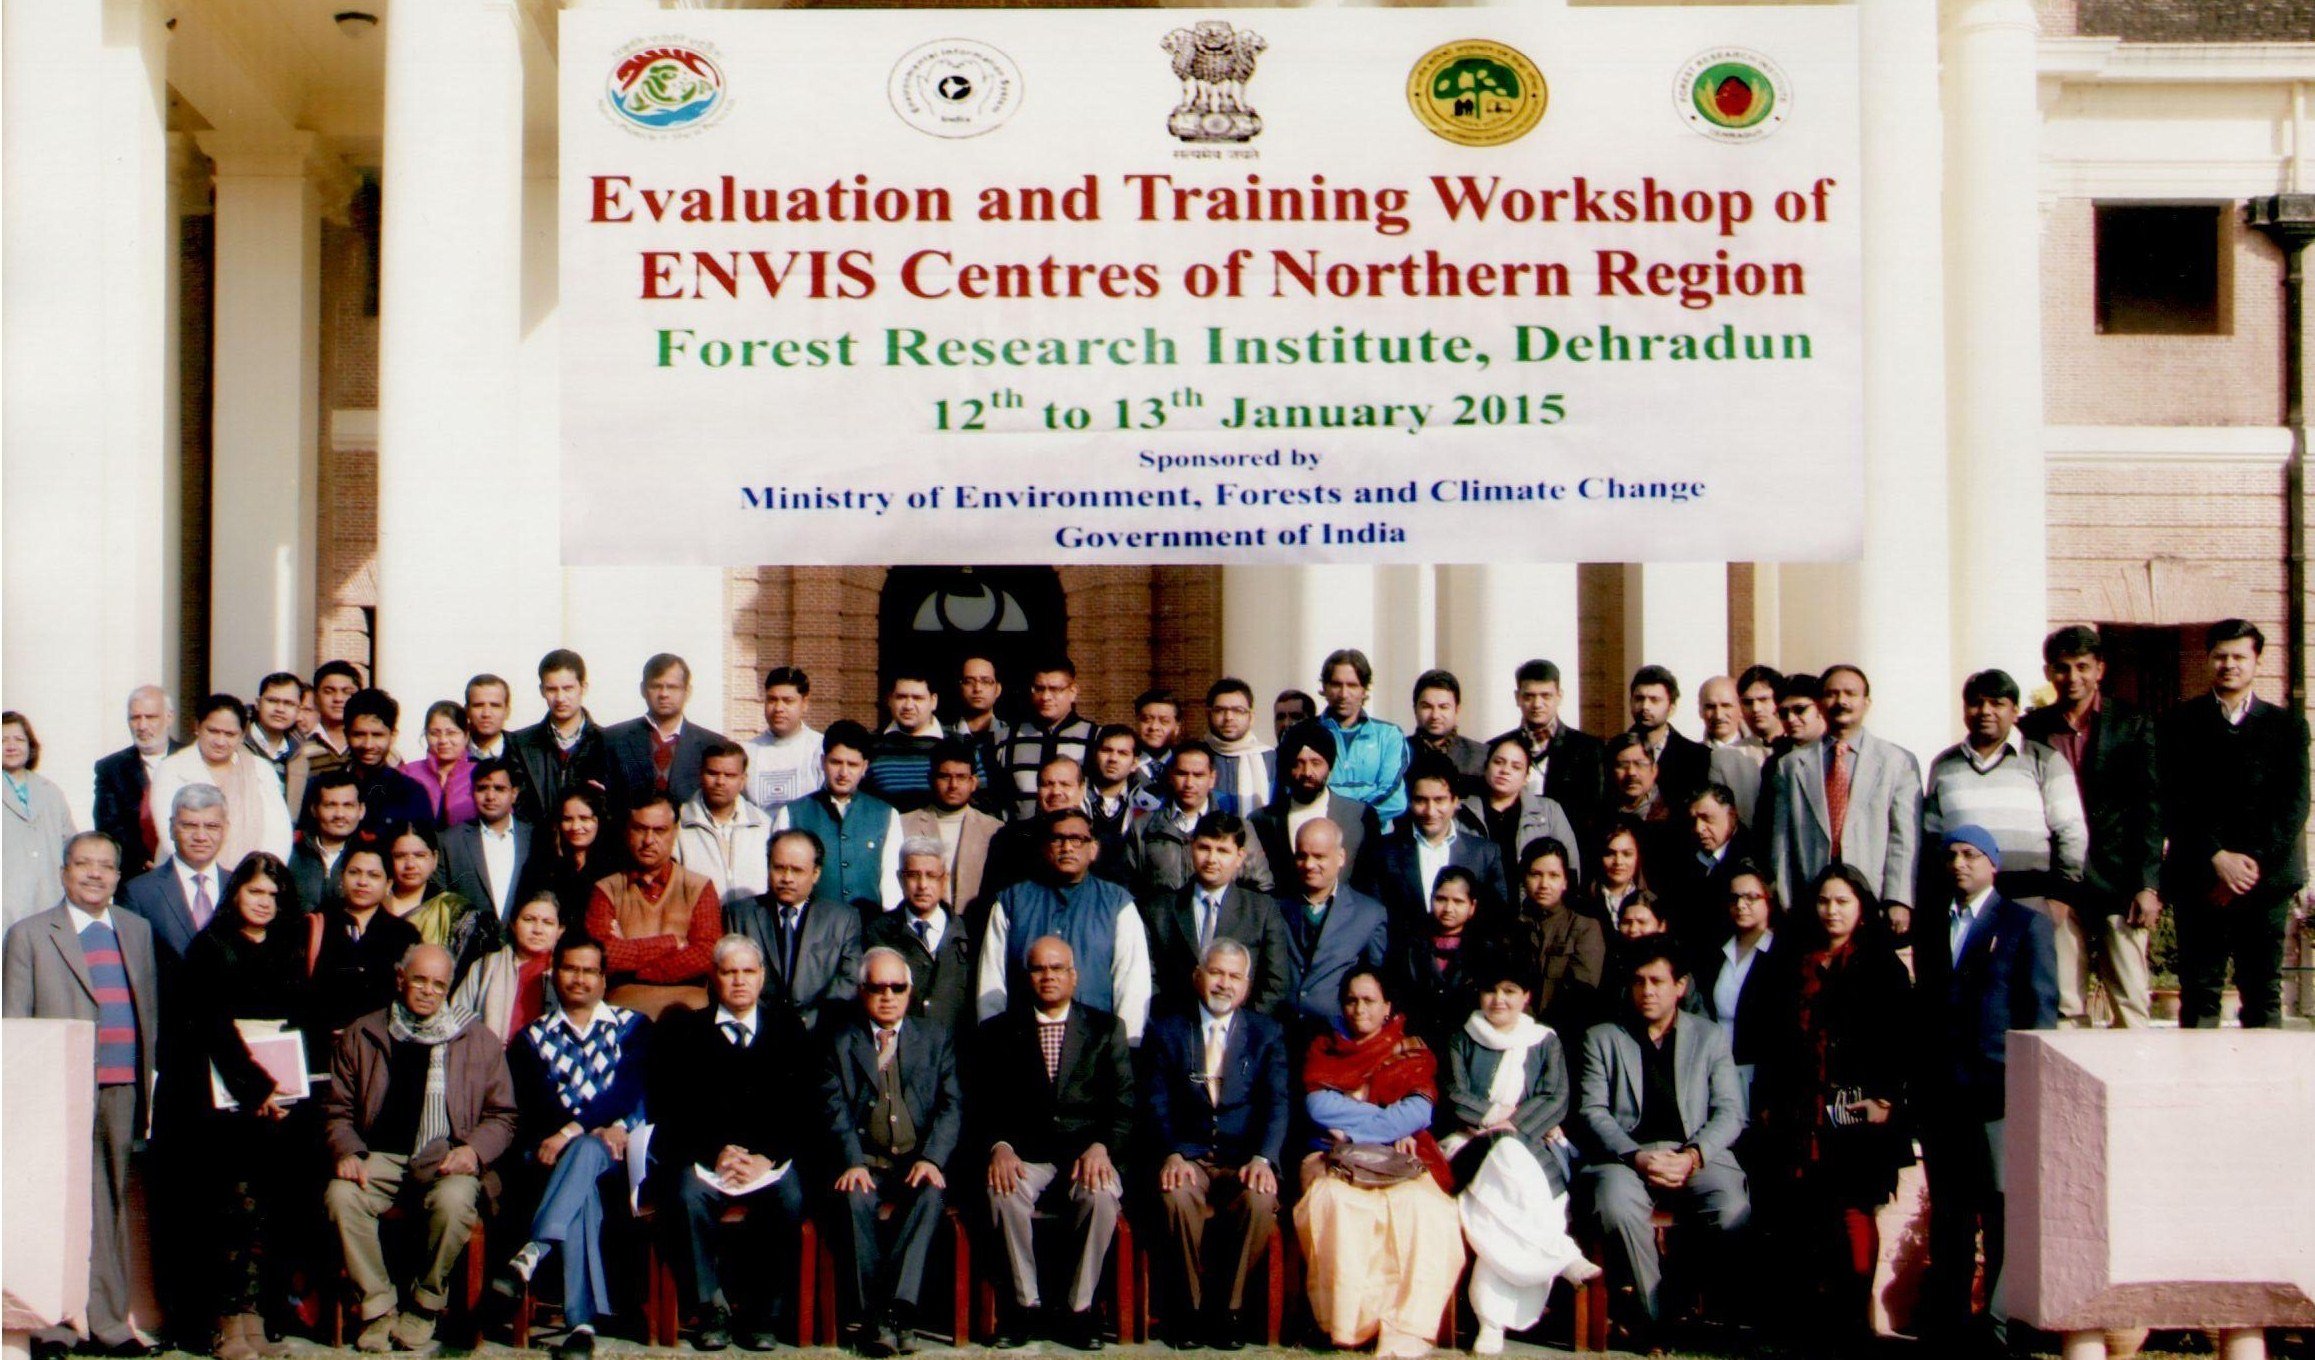 Evaluation Workshop for ENVIS Centres in Northern Region